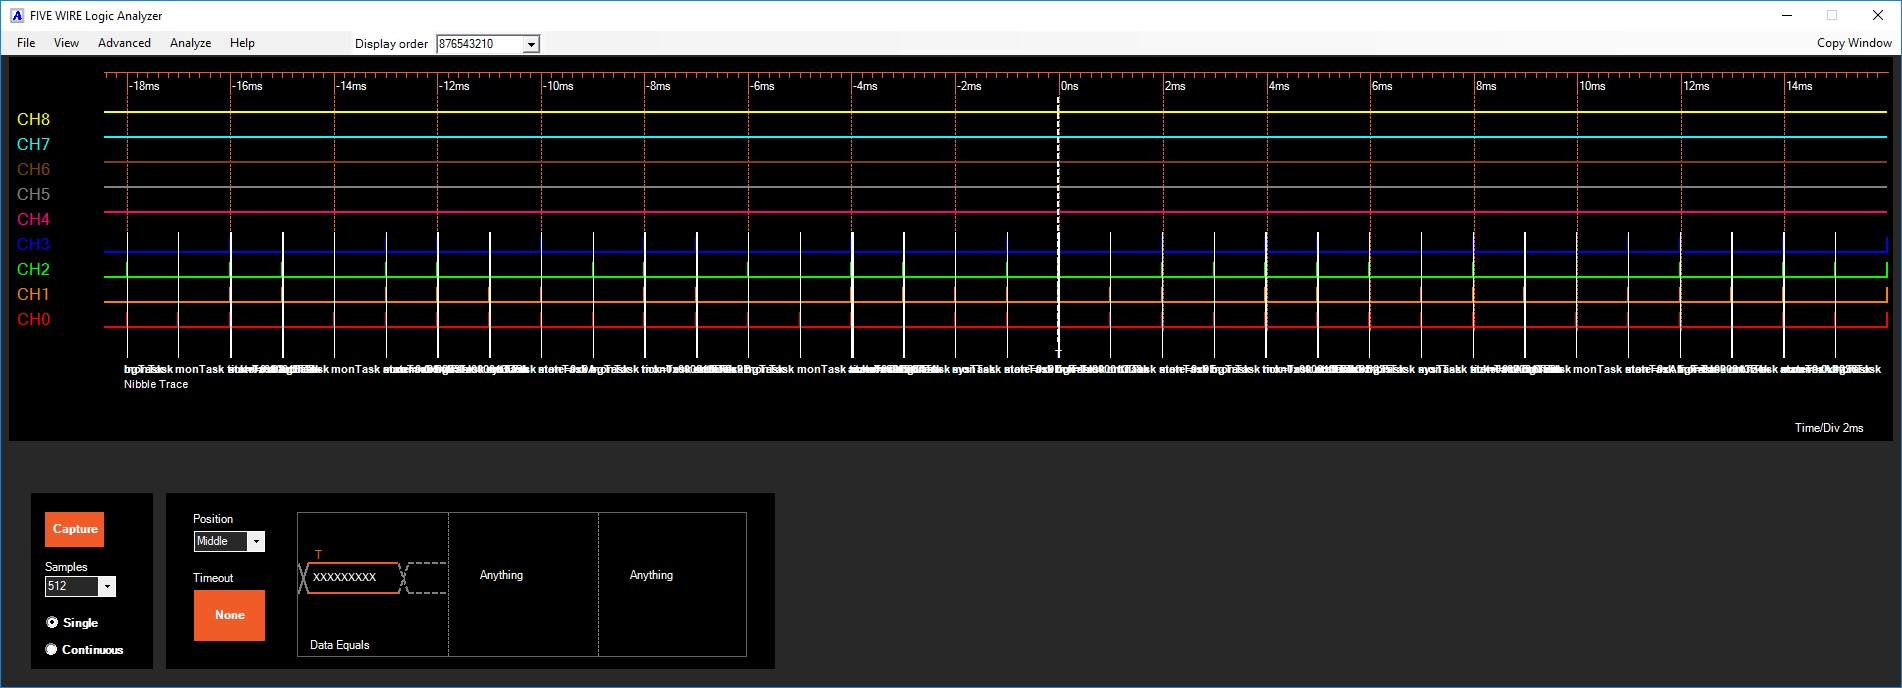 An example of capturing a span of time from an ST32F429 running 5 threads in FreeRTOS.